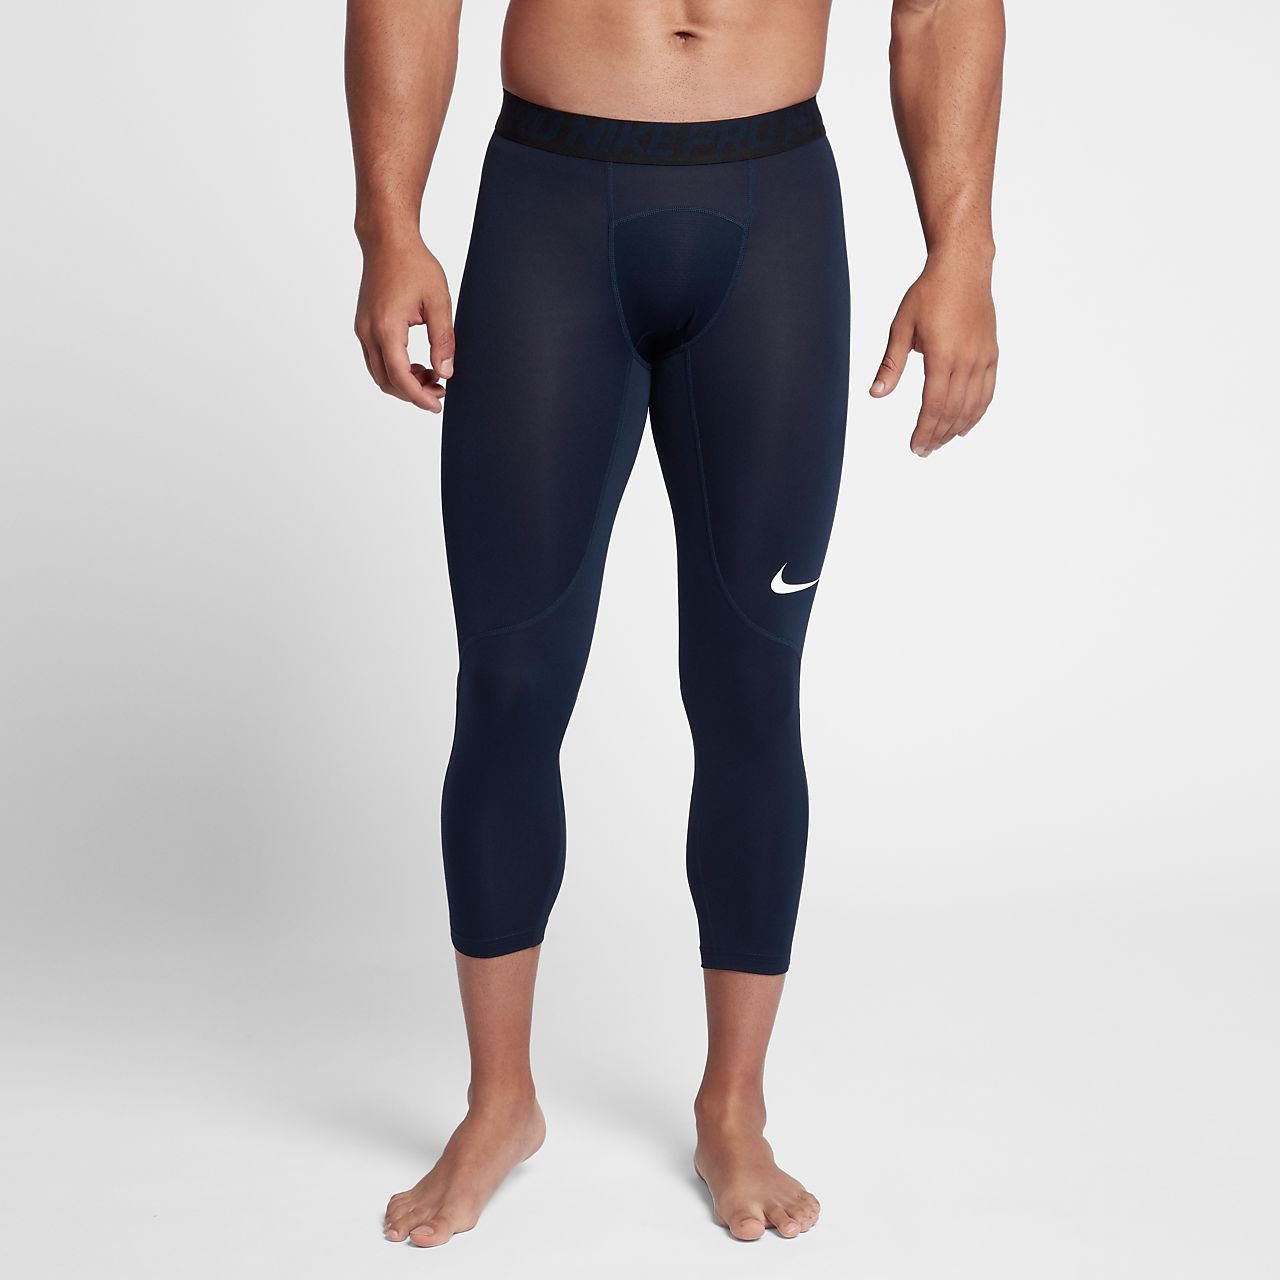 1529698bf89 Nike Pro Men s 3 4 Training Tights. Nike.com